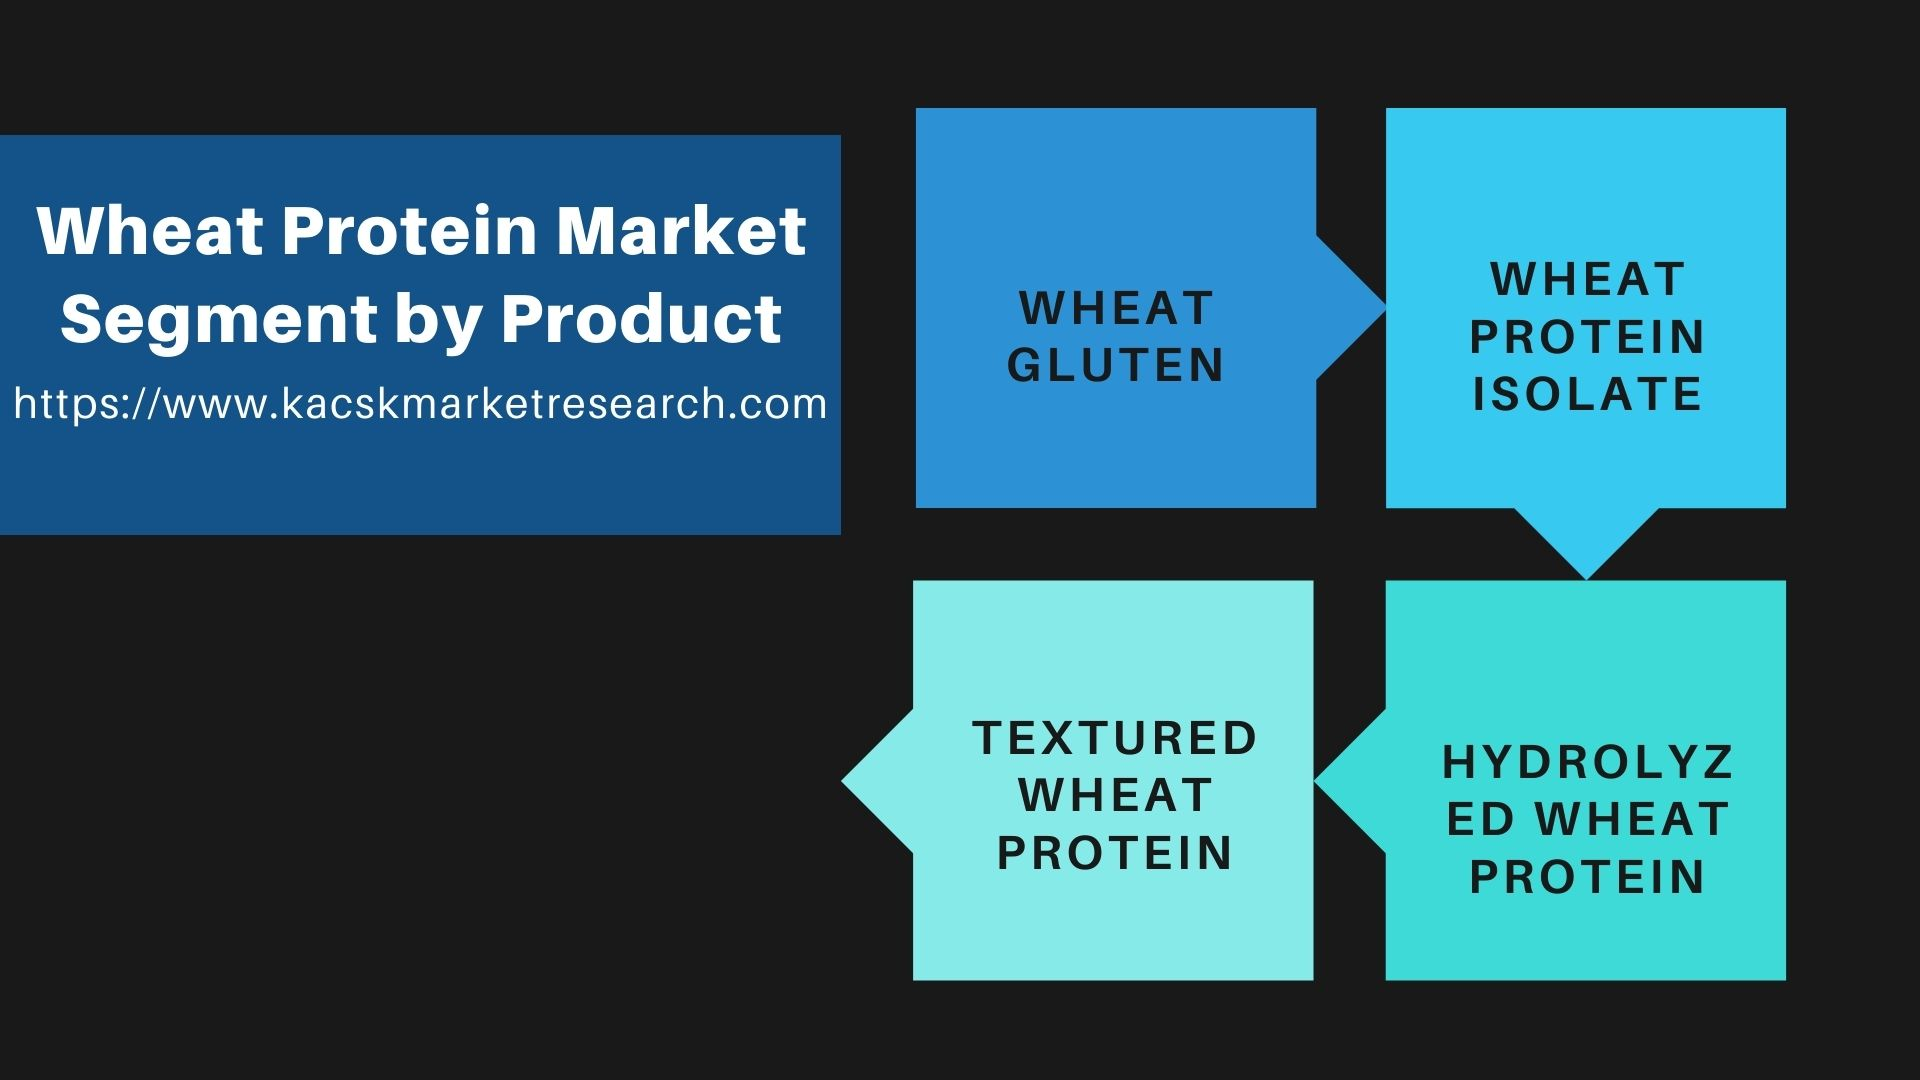 Wheat Protein Market Segment by Product